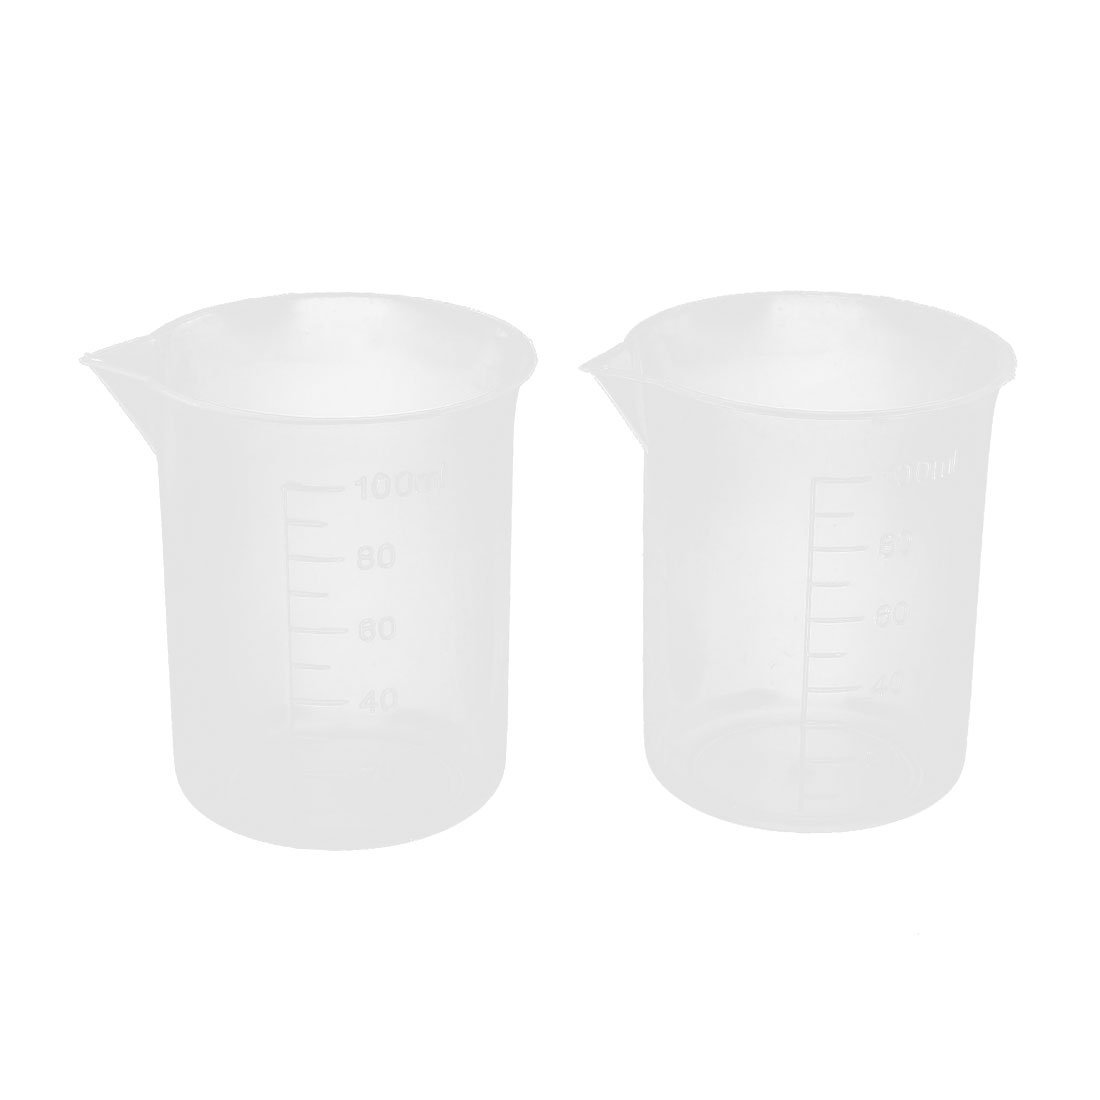 Uxcell a15020500ux0050 2 Pcs 100mL 3.4oZ Clear Plastic Graduated Measuring Beaker Cup for Lab (Pack of 2)